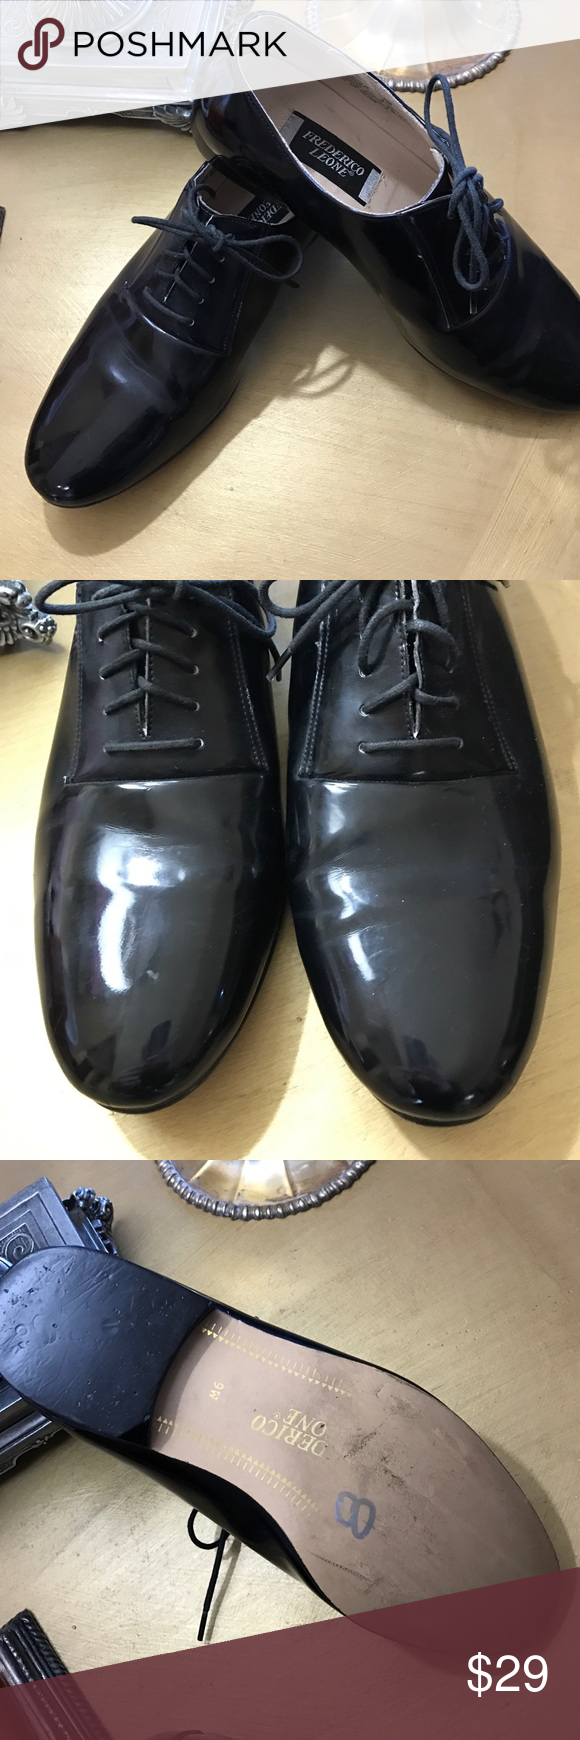 Frederico Leone Patent Leather Shoes Lightly worn leather tie shoes. 9W Frederico Leone Shoes